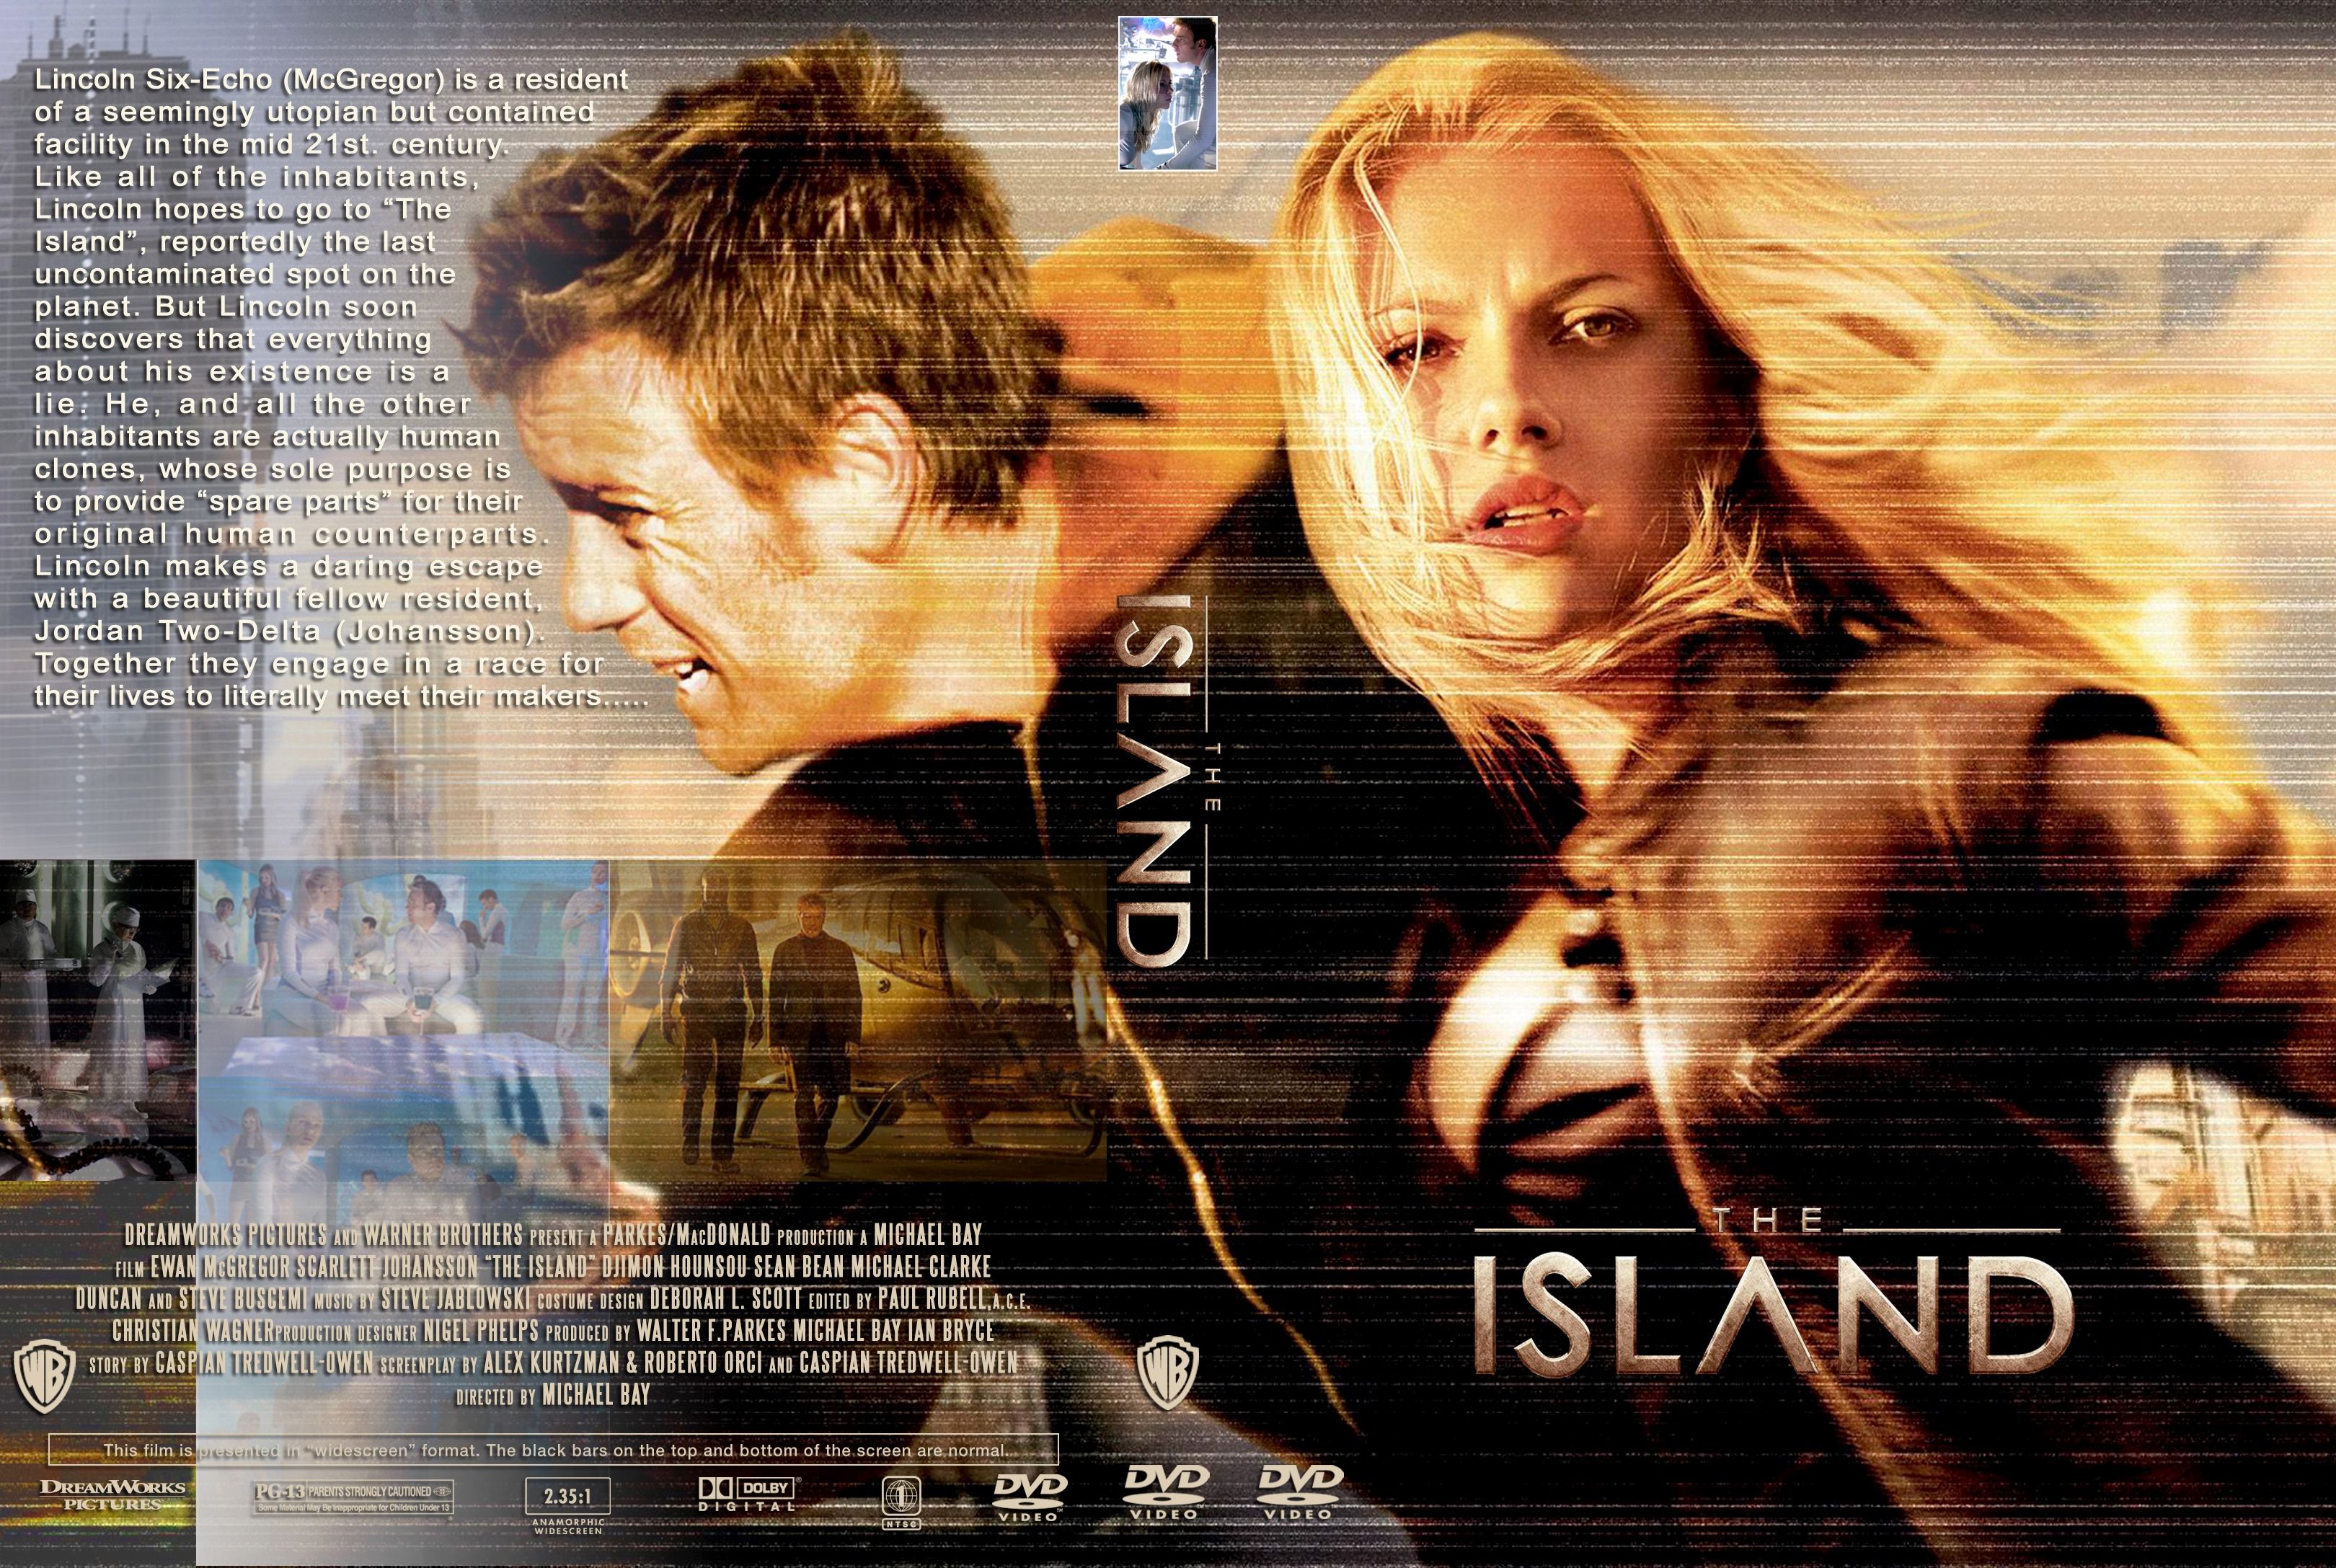 the island 2005 full movie download